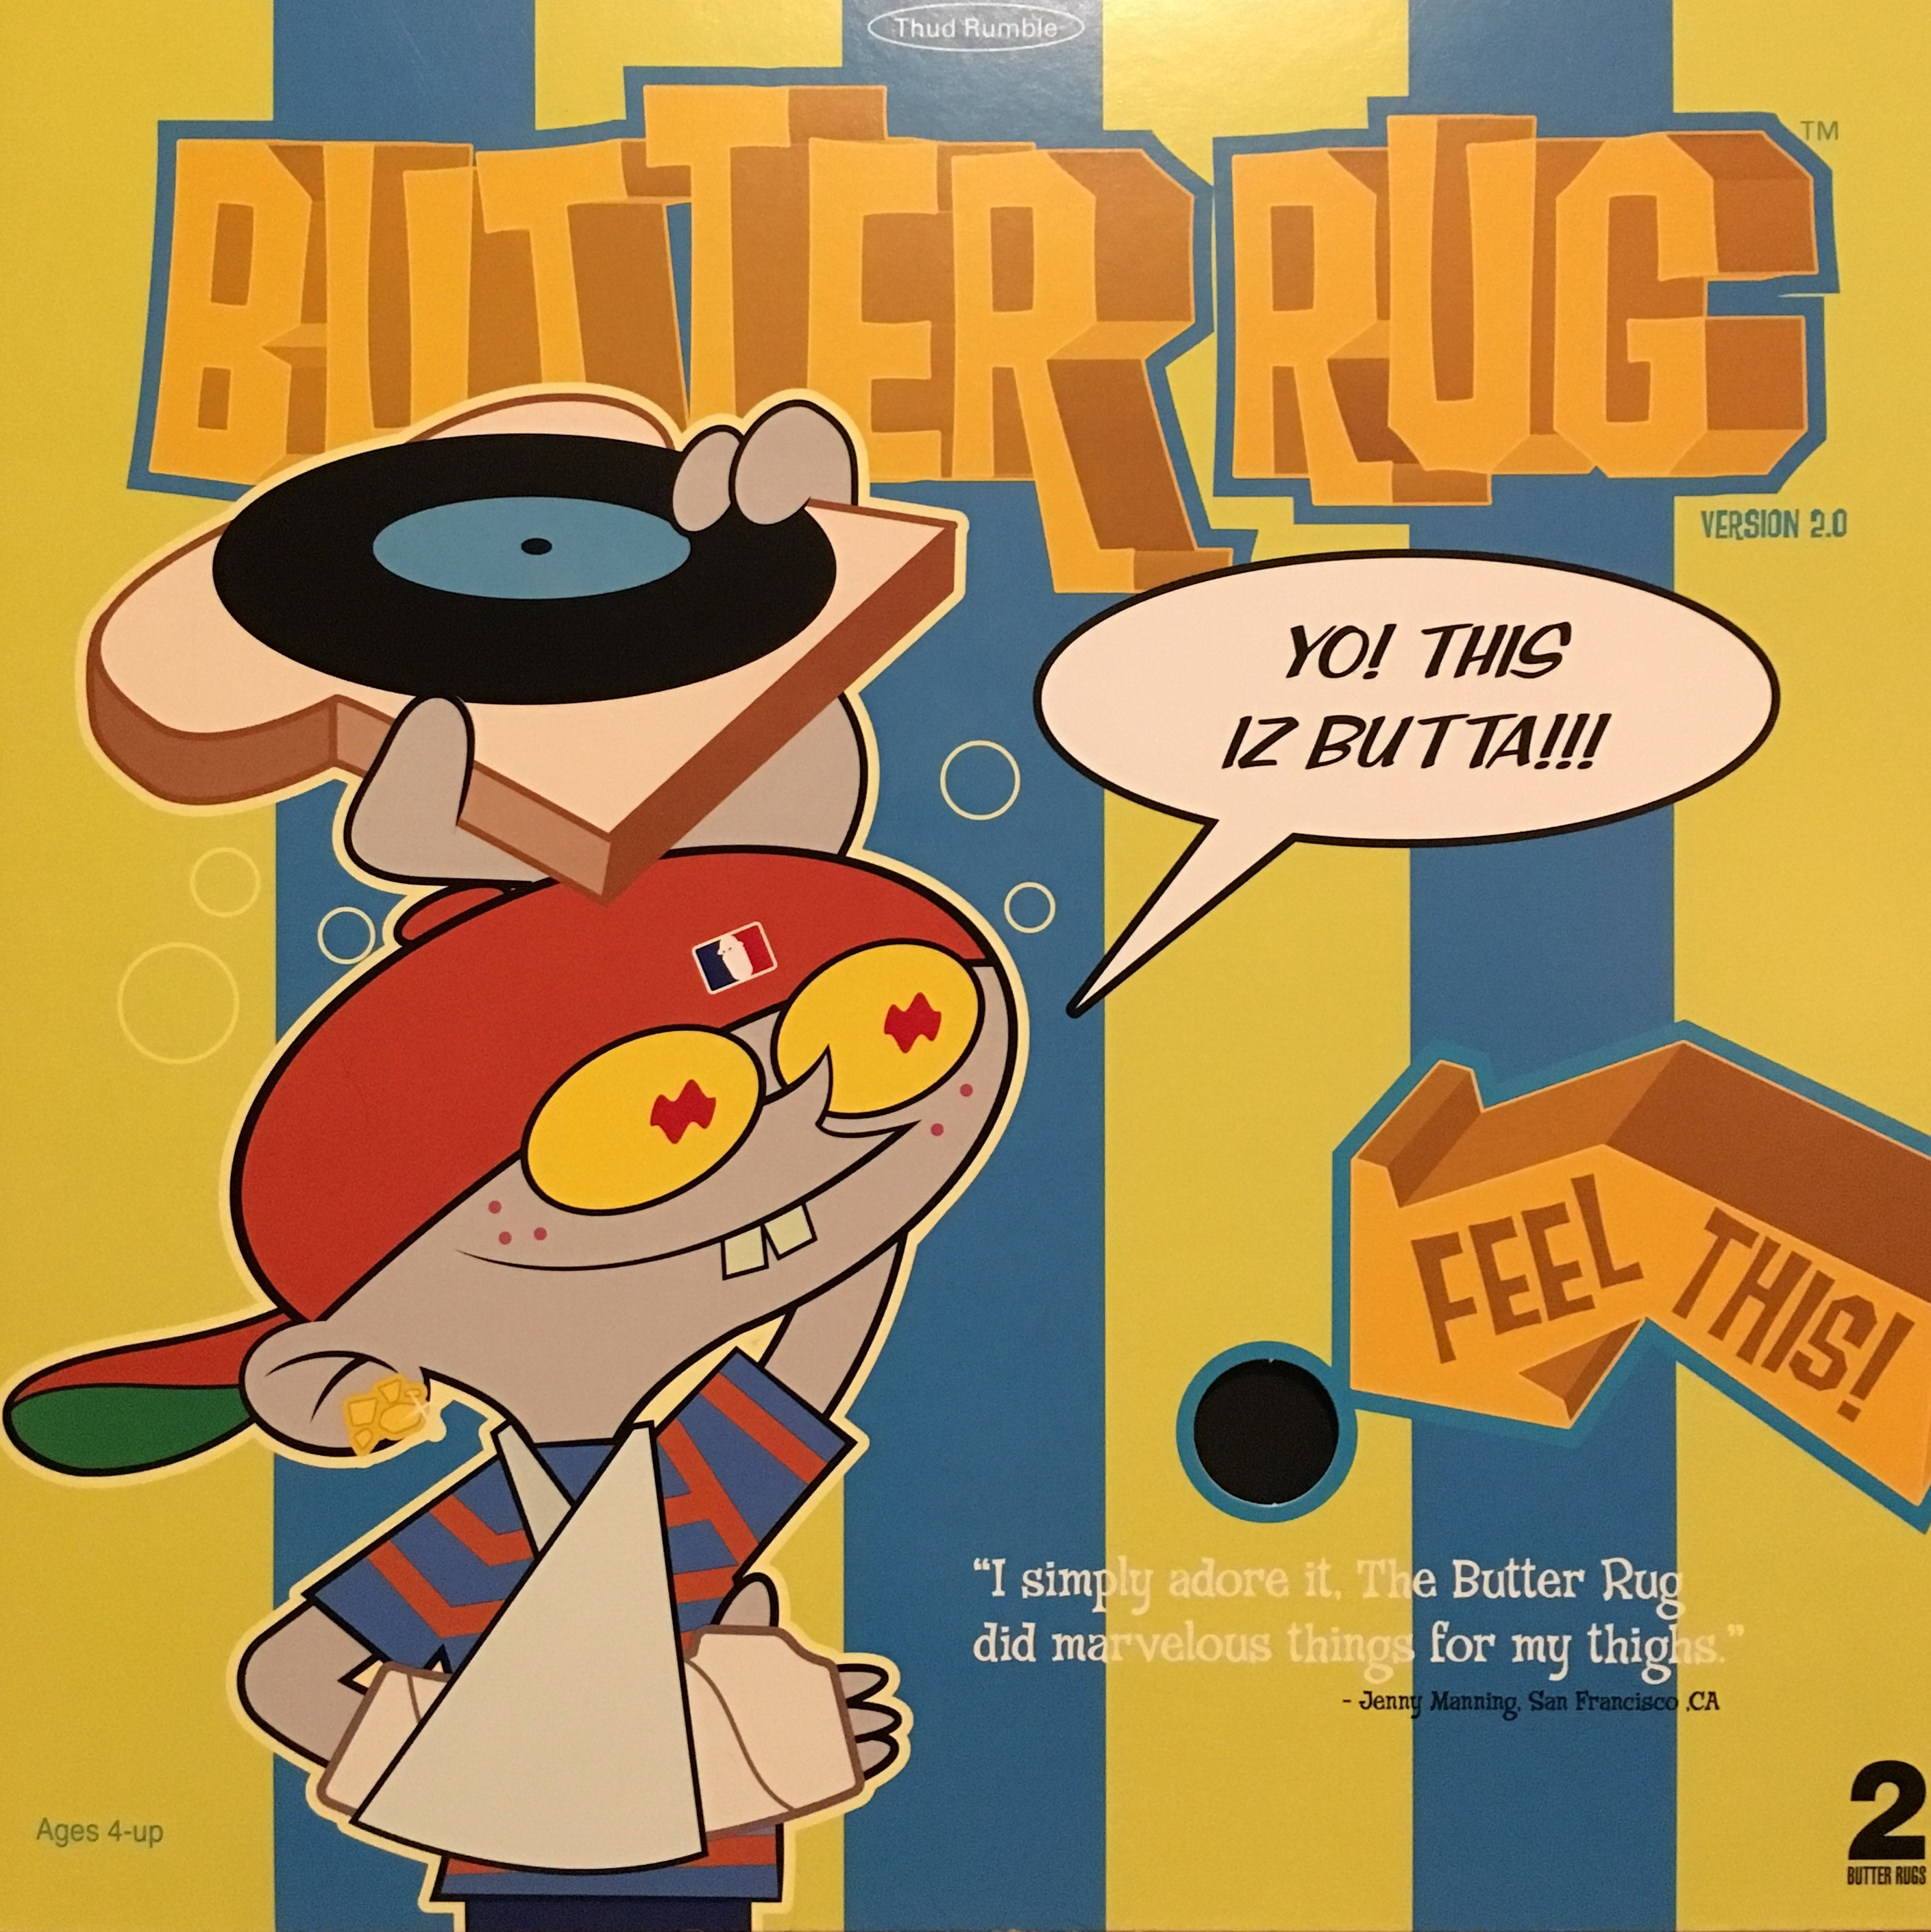 Butter Rugs (Retro Cover) 12""